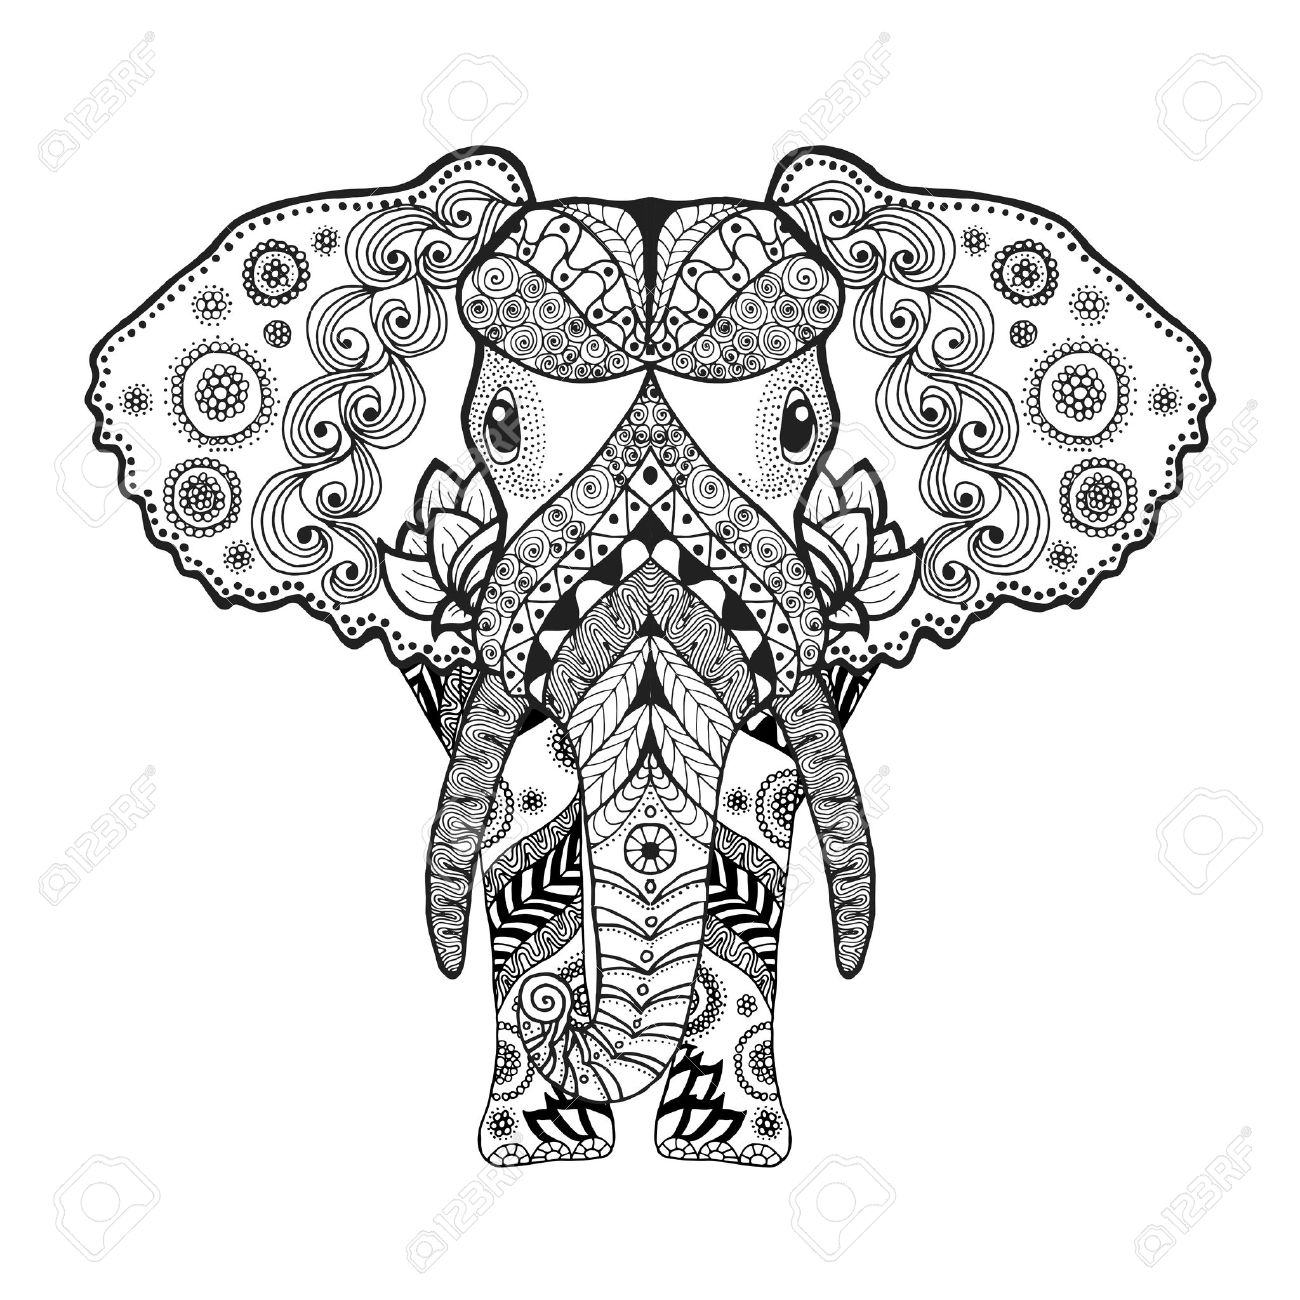 antistress coloring page black white hand drawn doodle